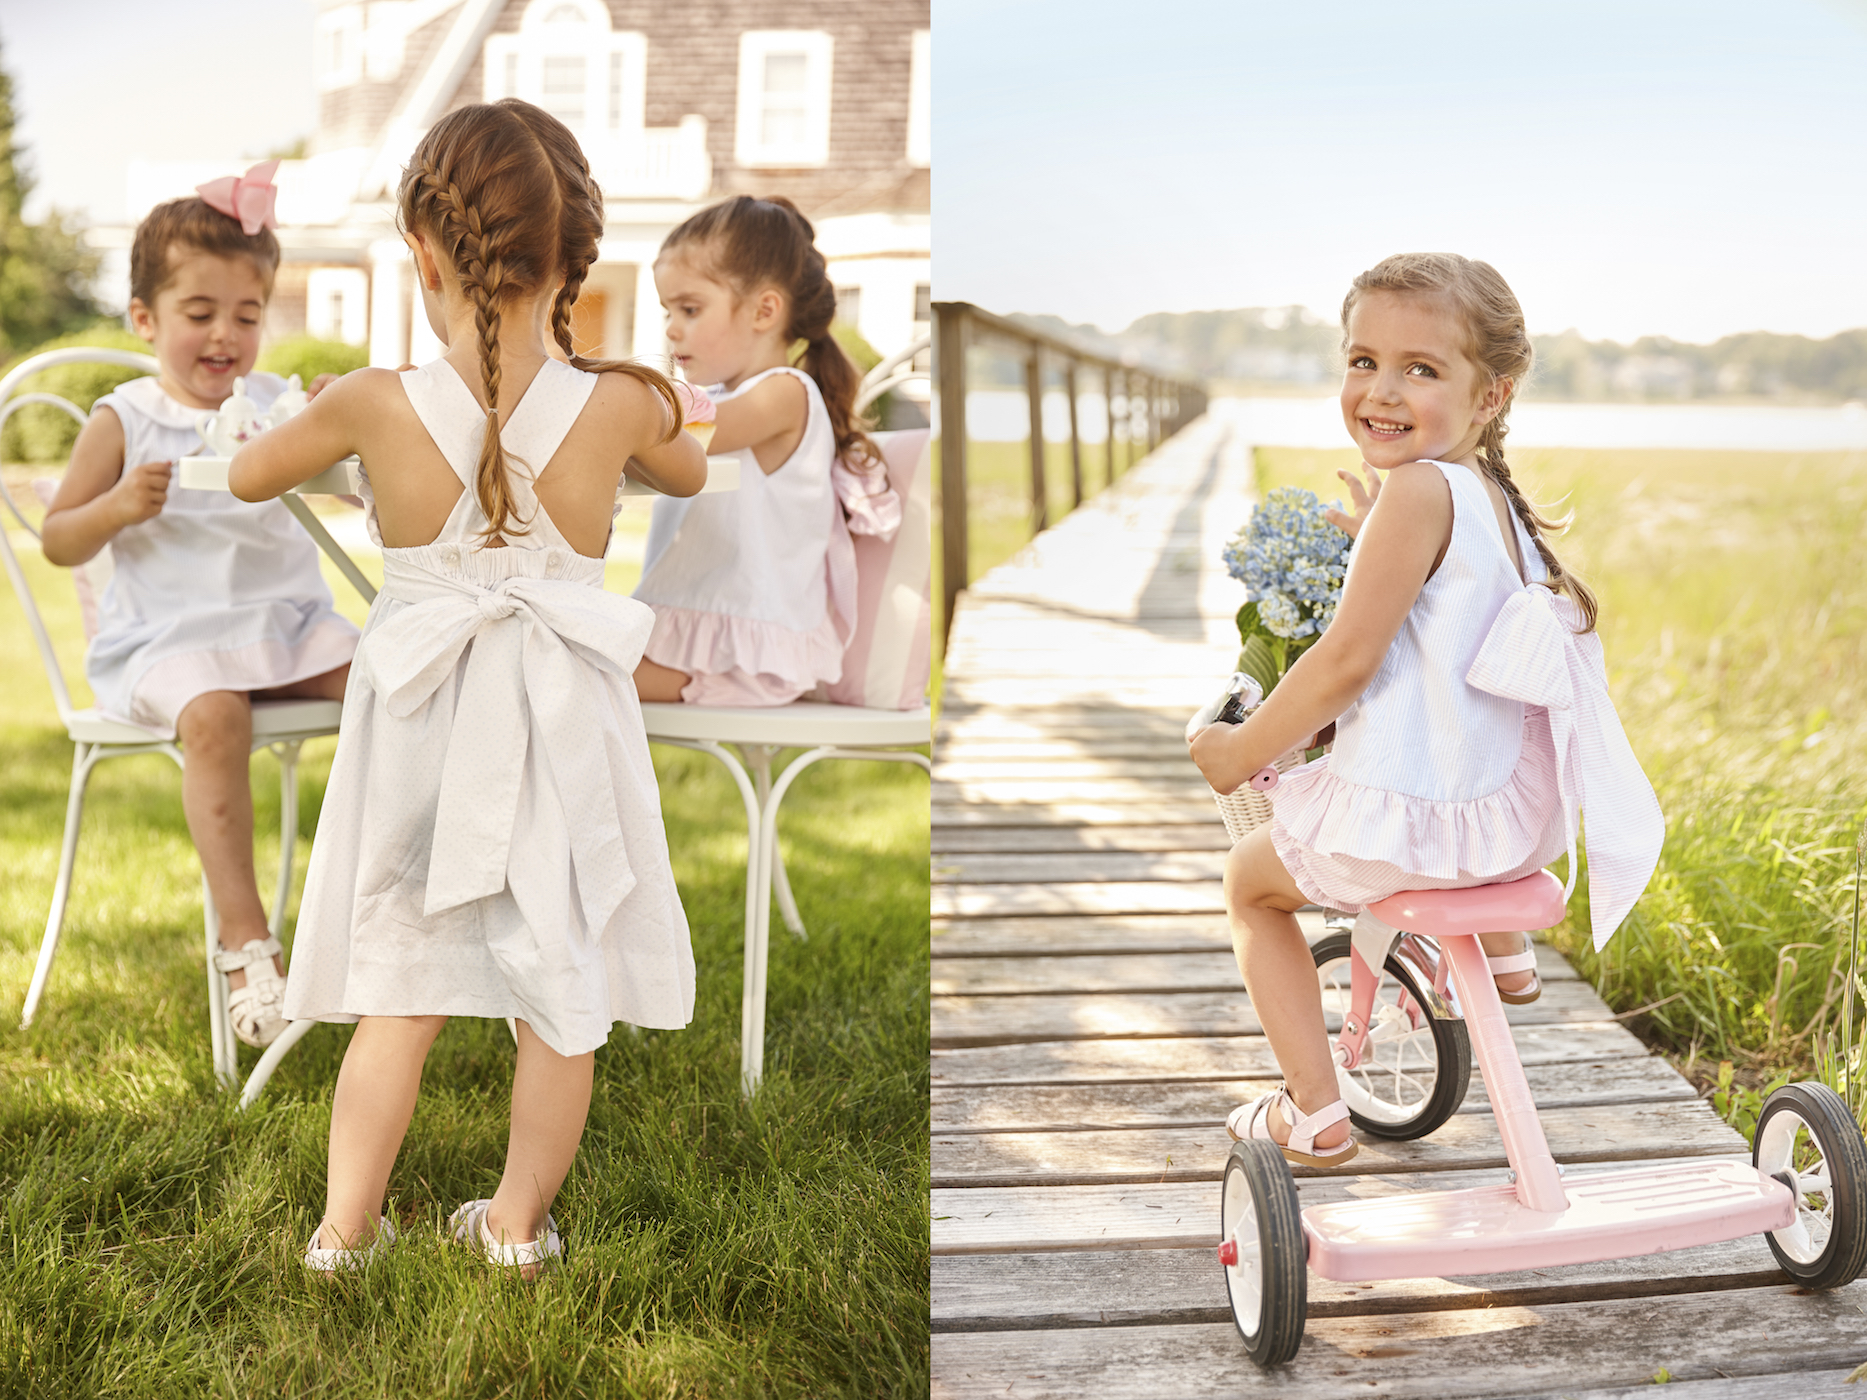 Nantucket-Kids-Allie-Cottrill3